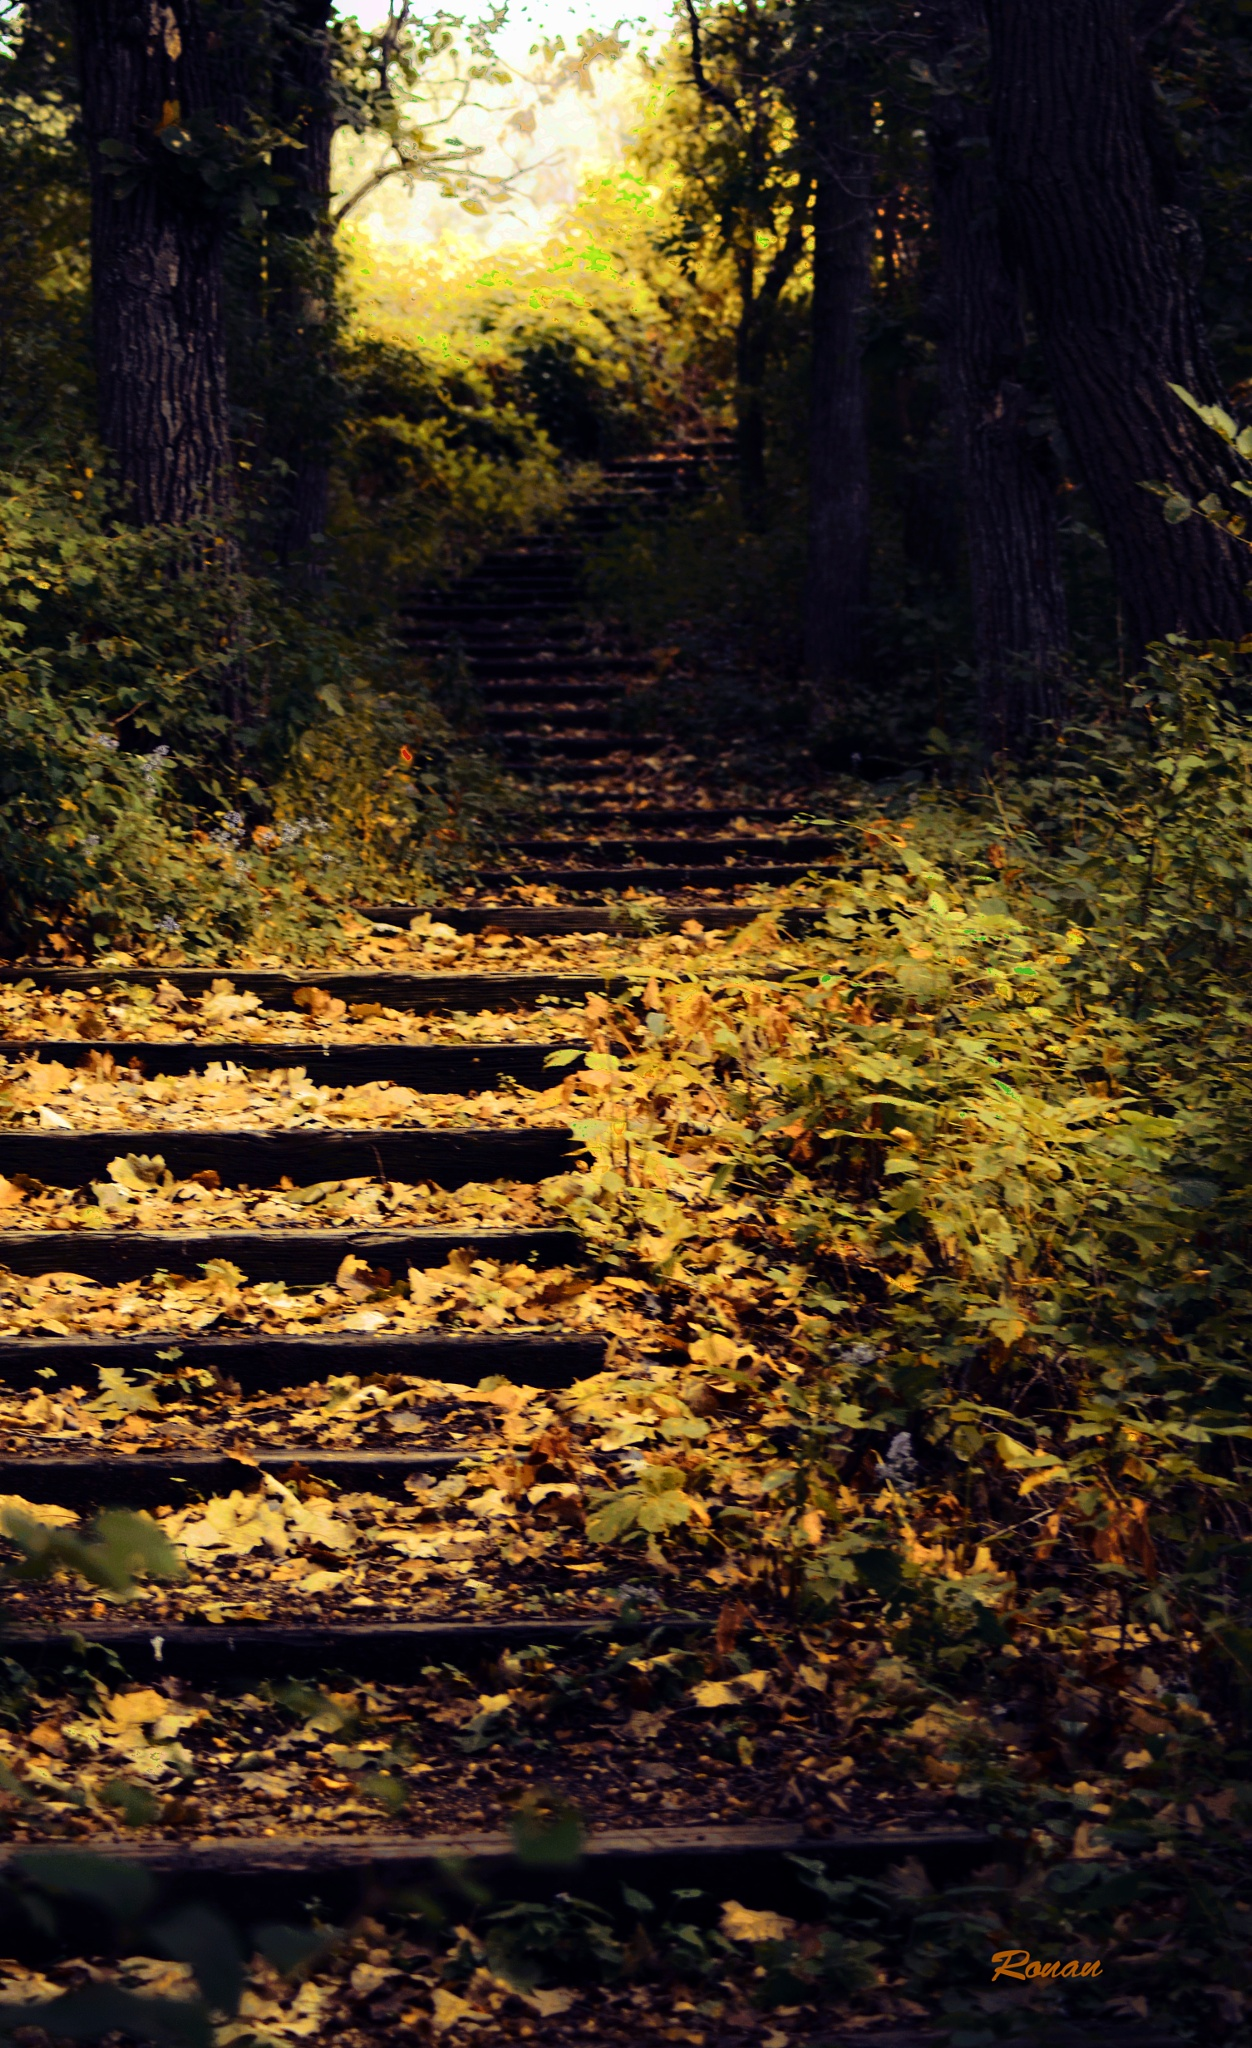 The stairs that lead upward by Kimberly Ronan